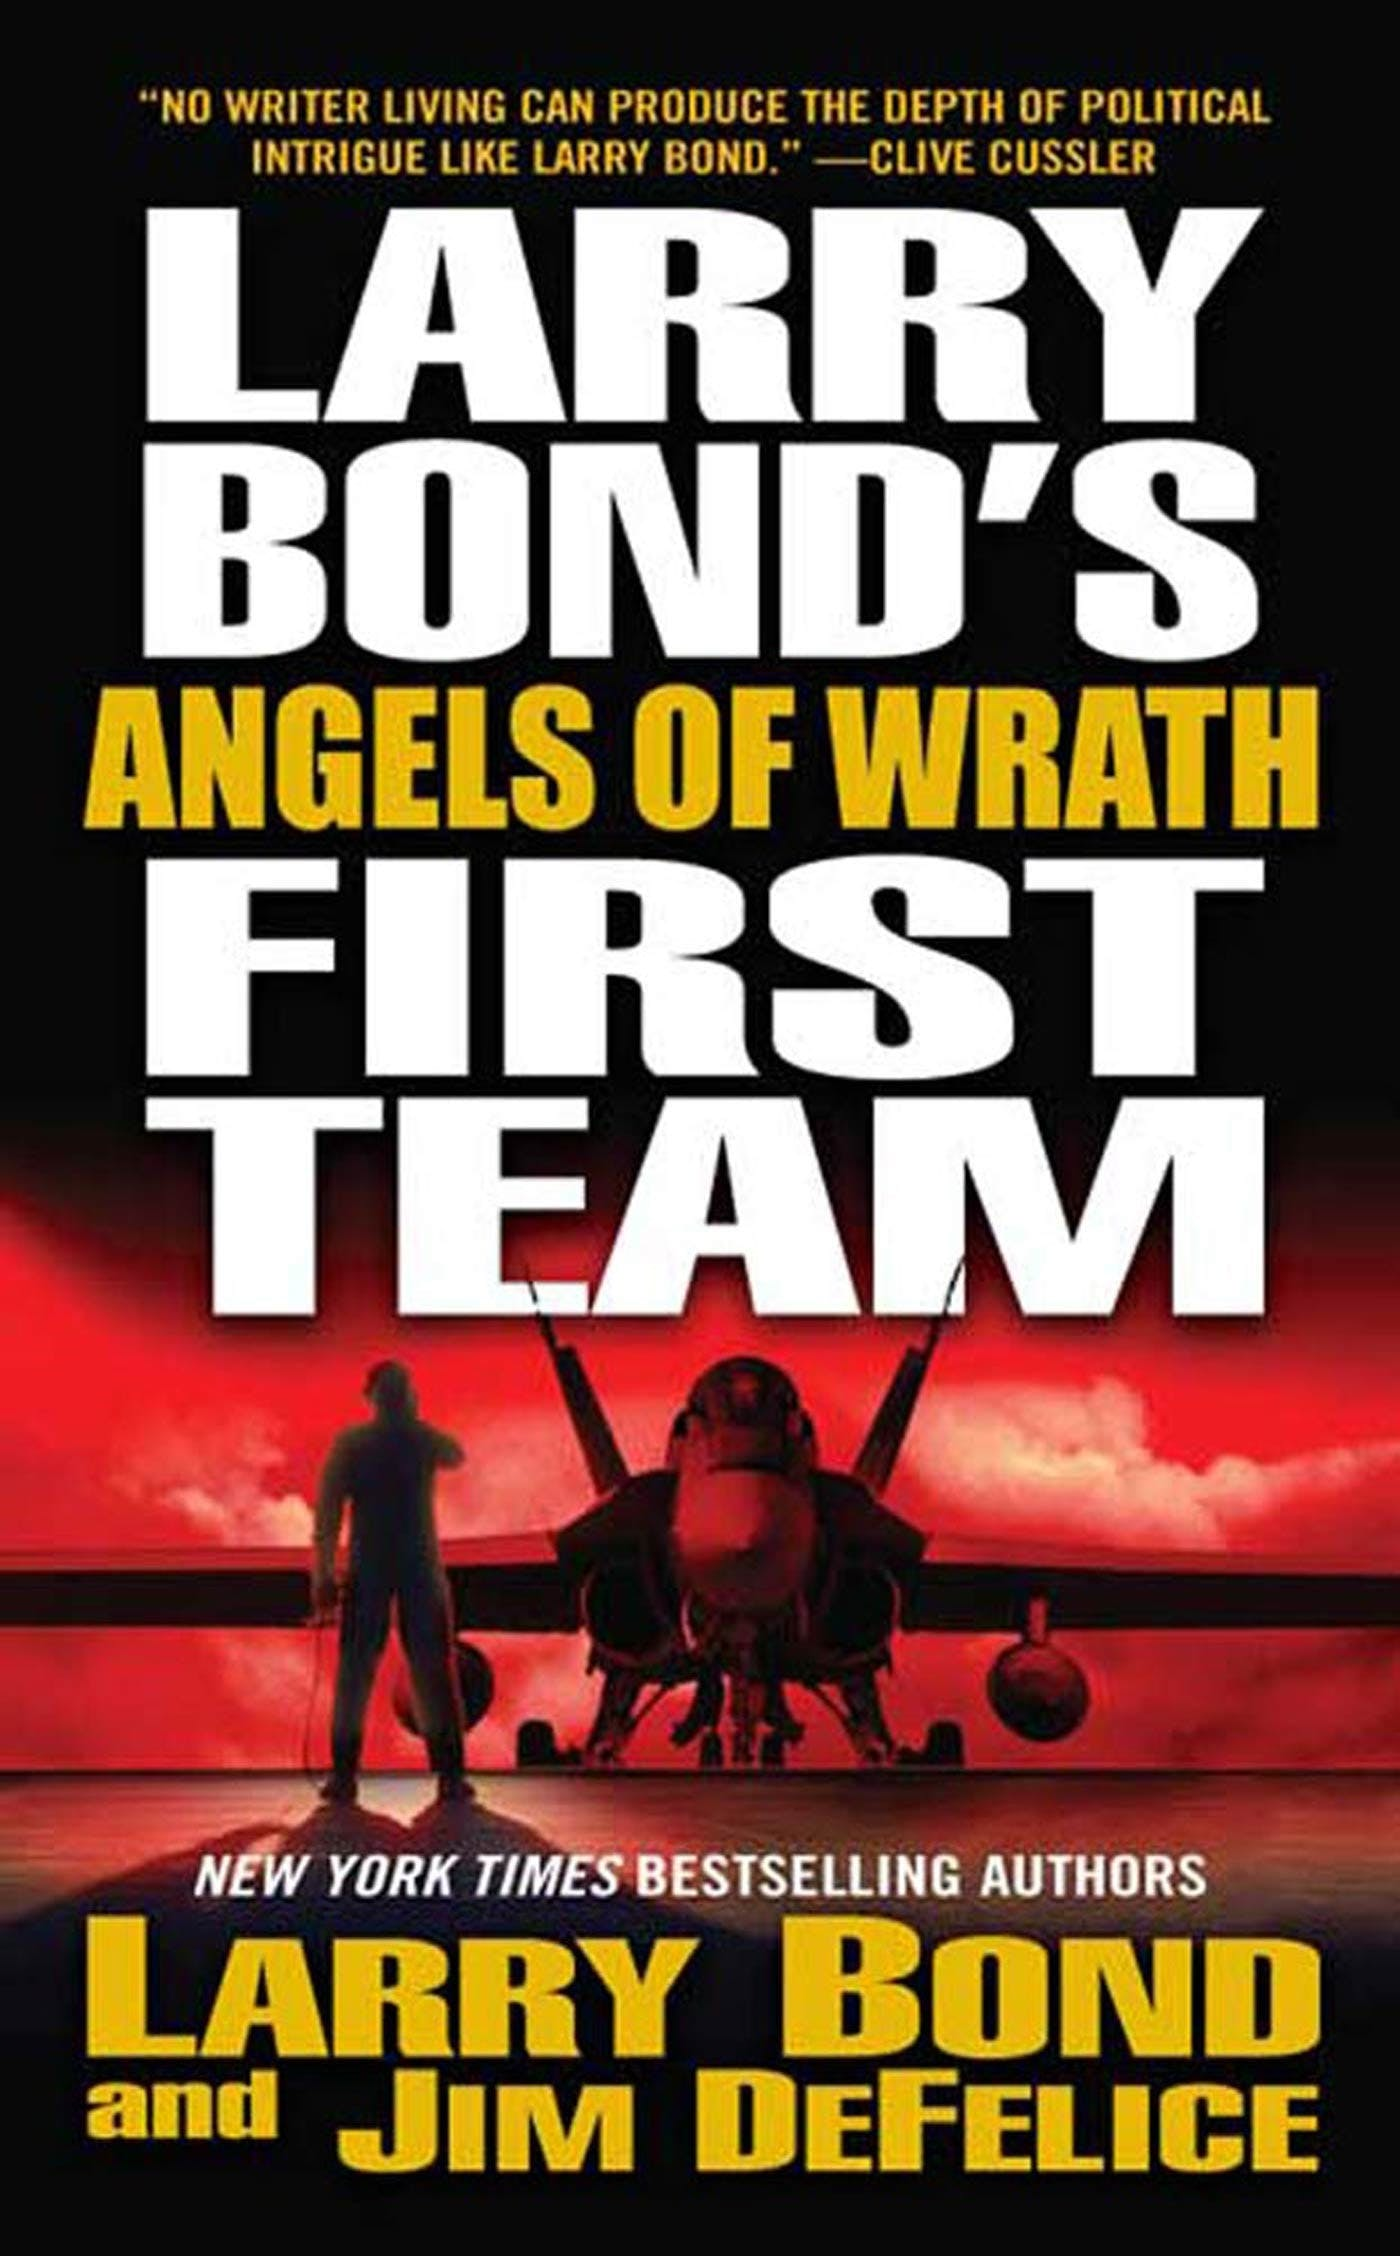 Image of Larry Bond's First Team: Angels of Wrath